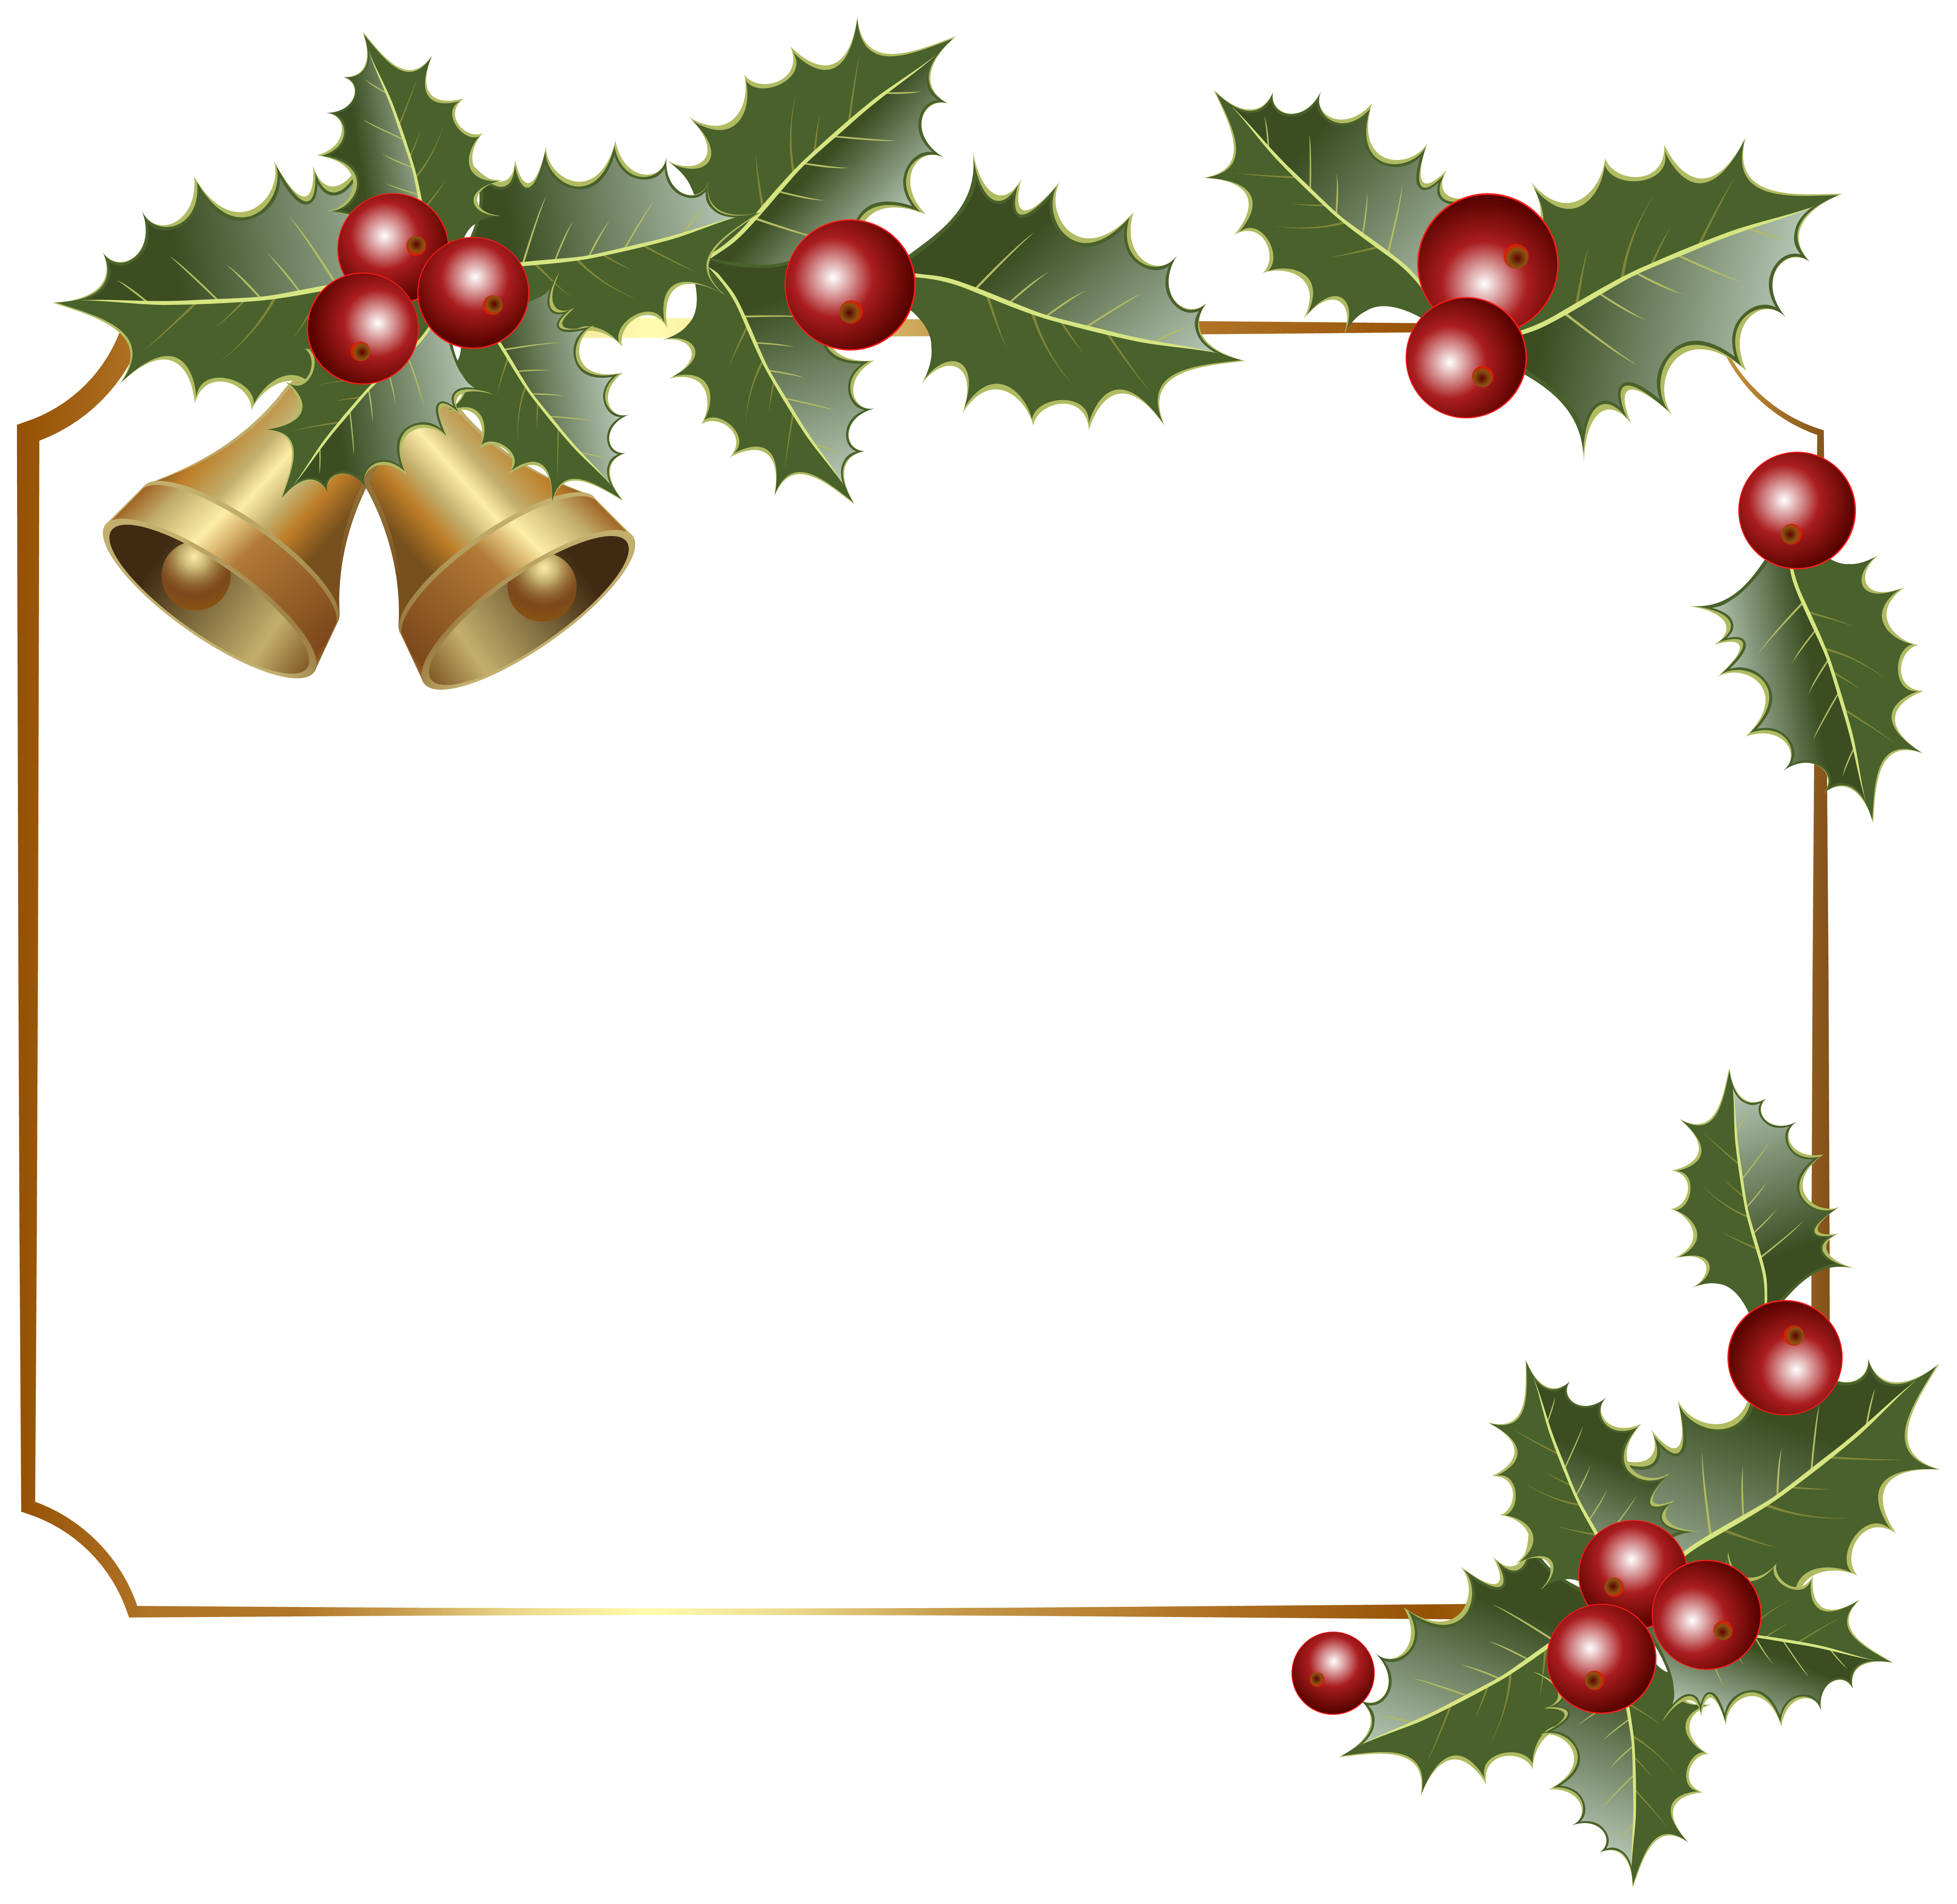 christmas border images free download best christmas free holly clipart black and white free holly clipart images